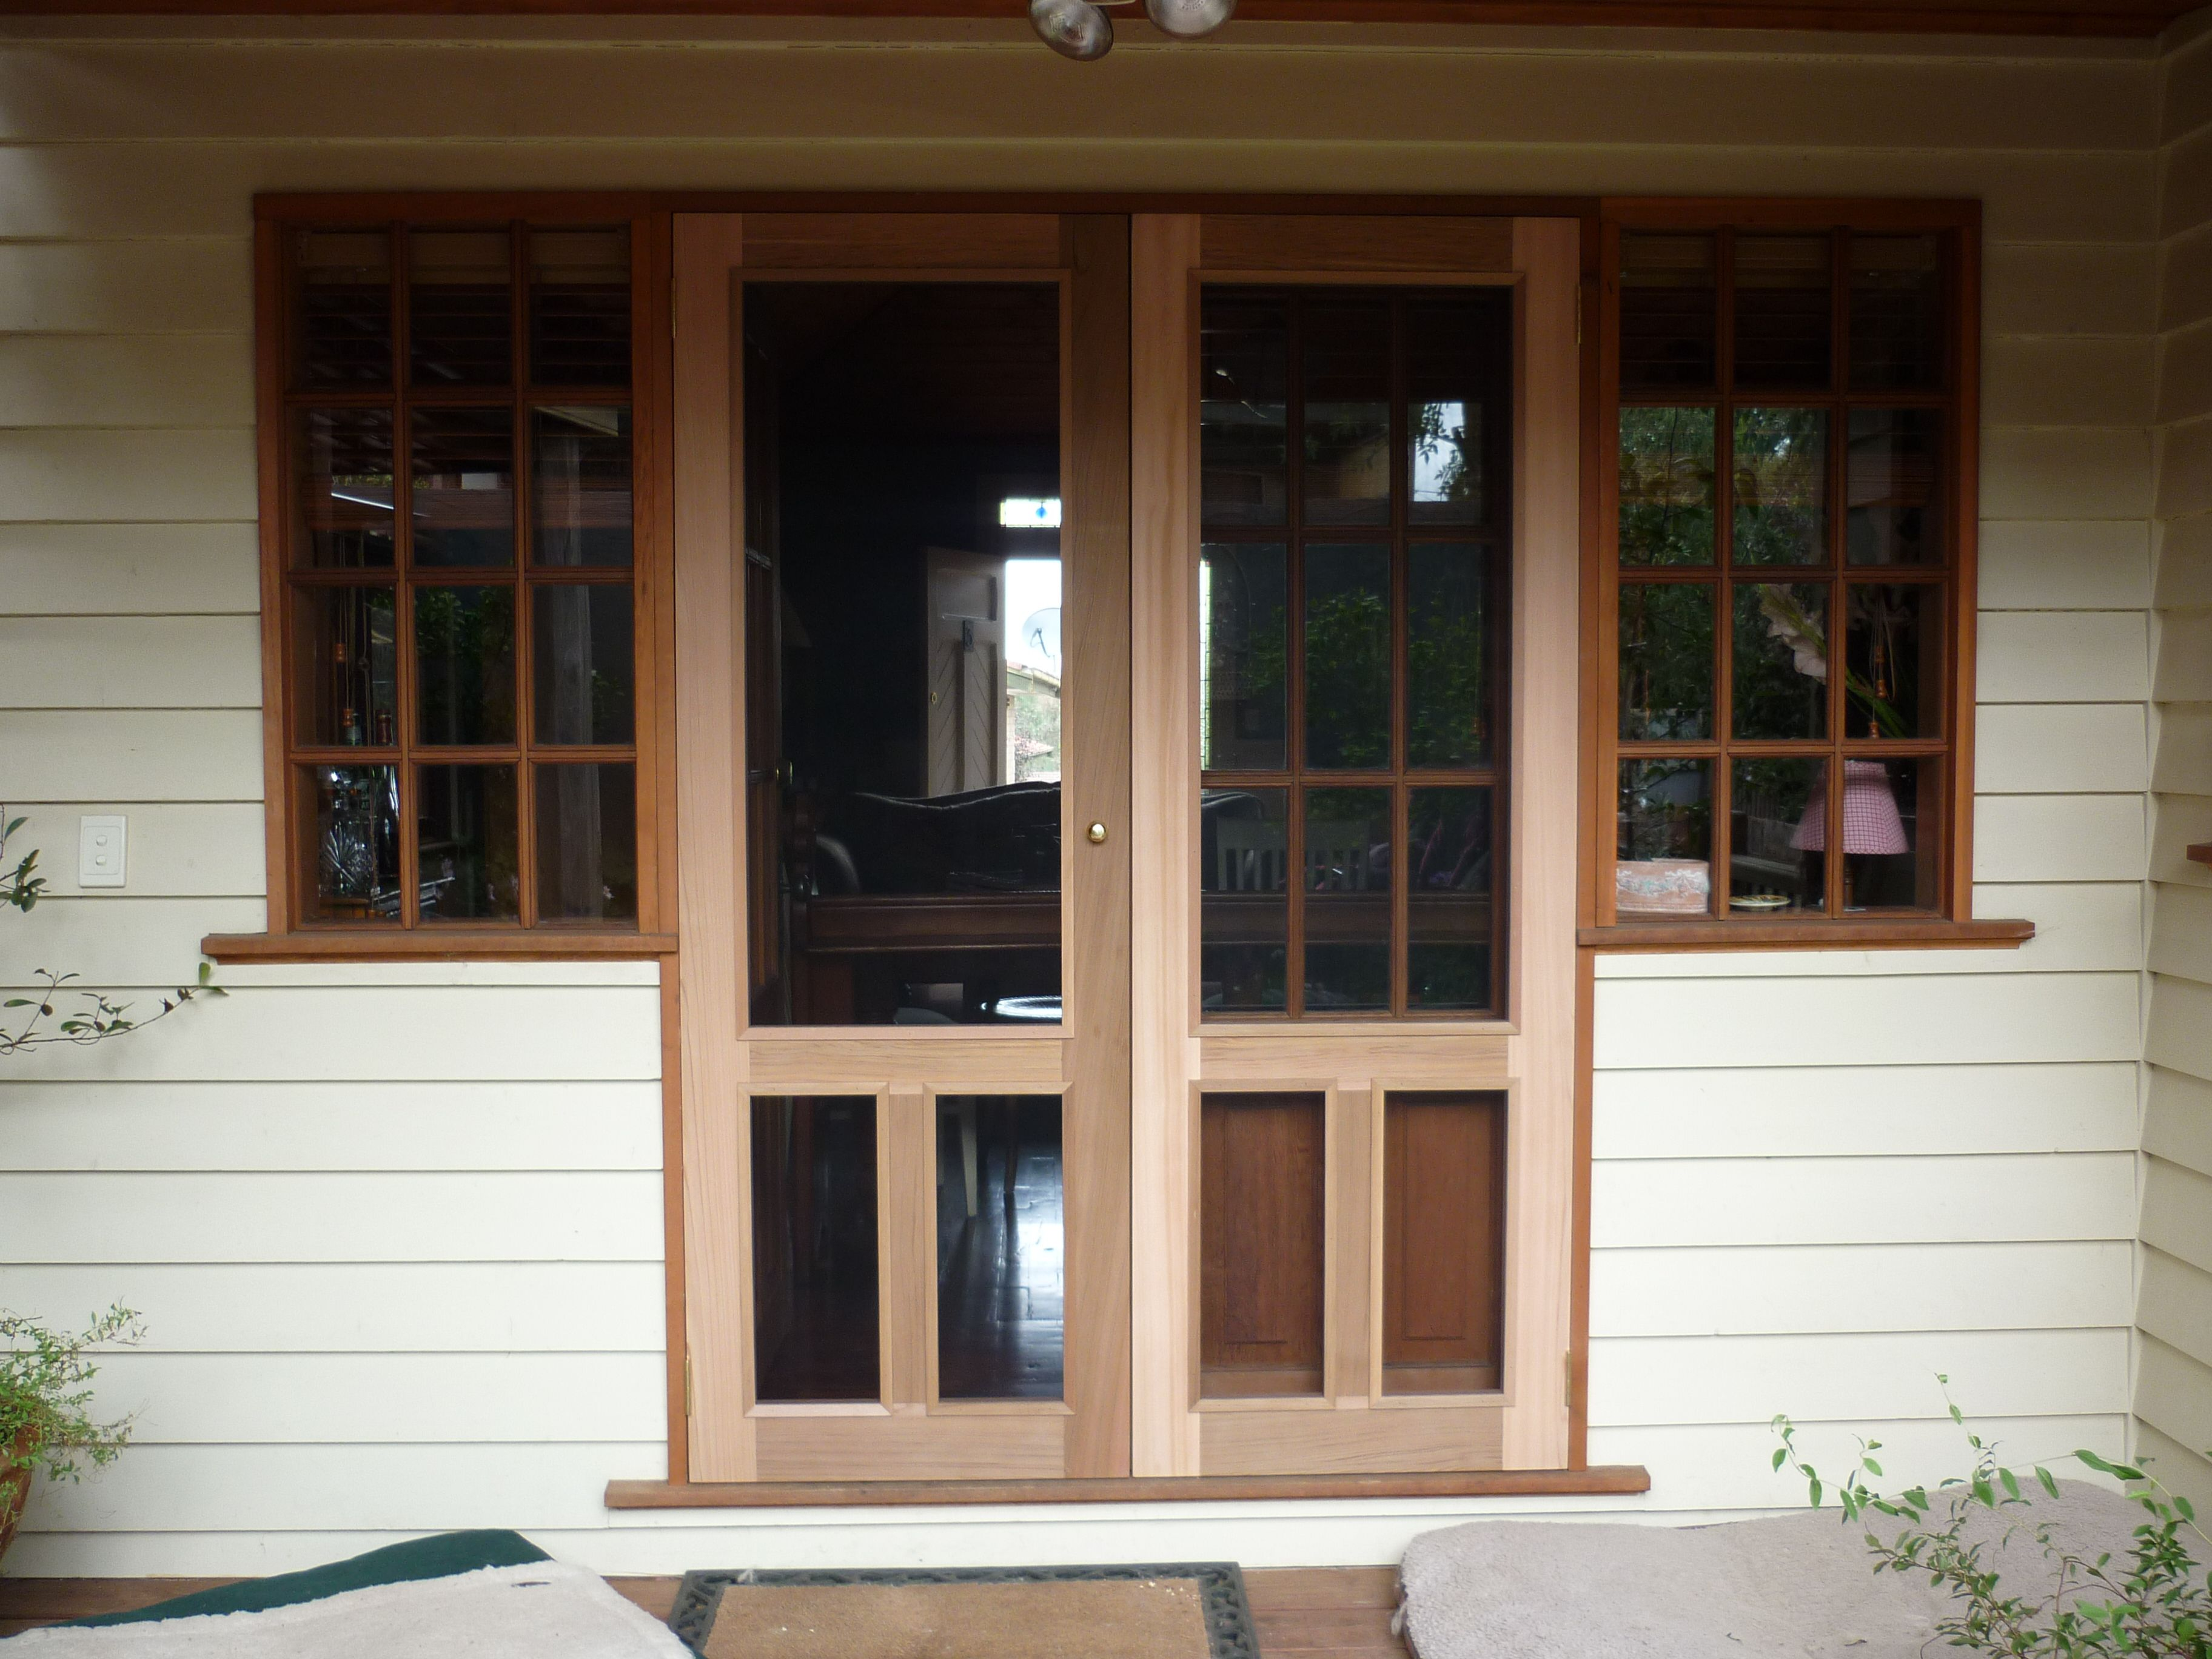 fly screen to match french doors | Fly screen doors ...